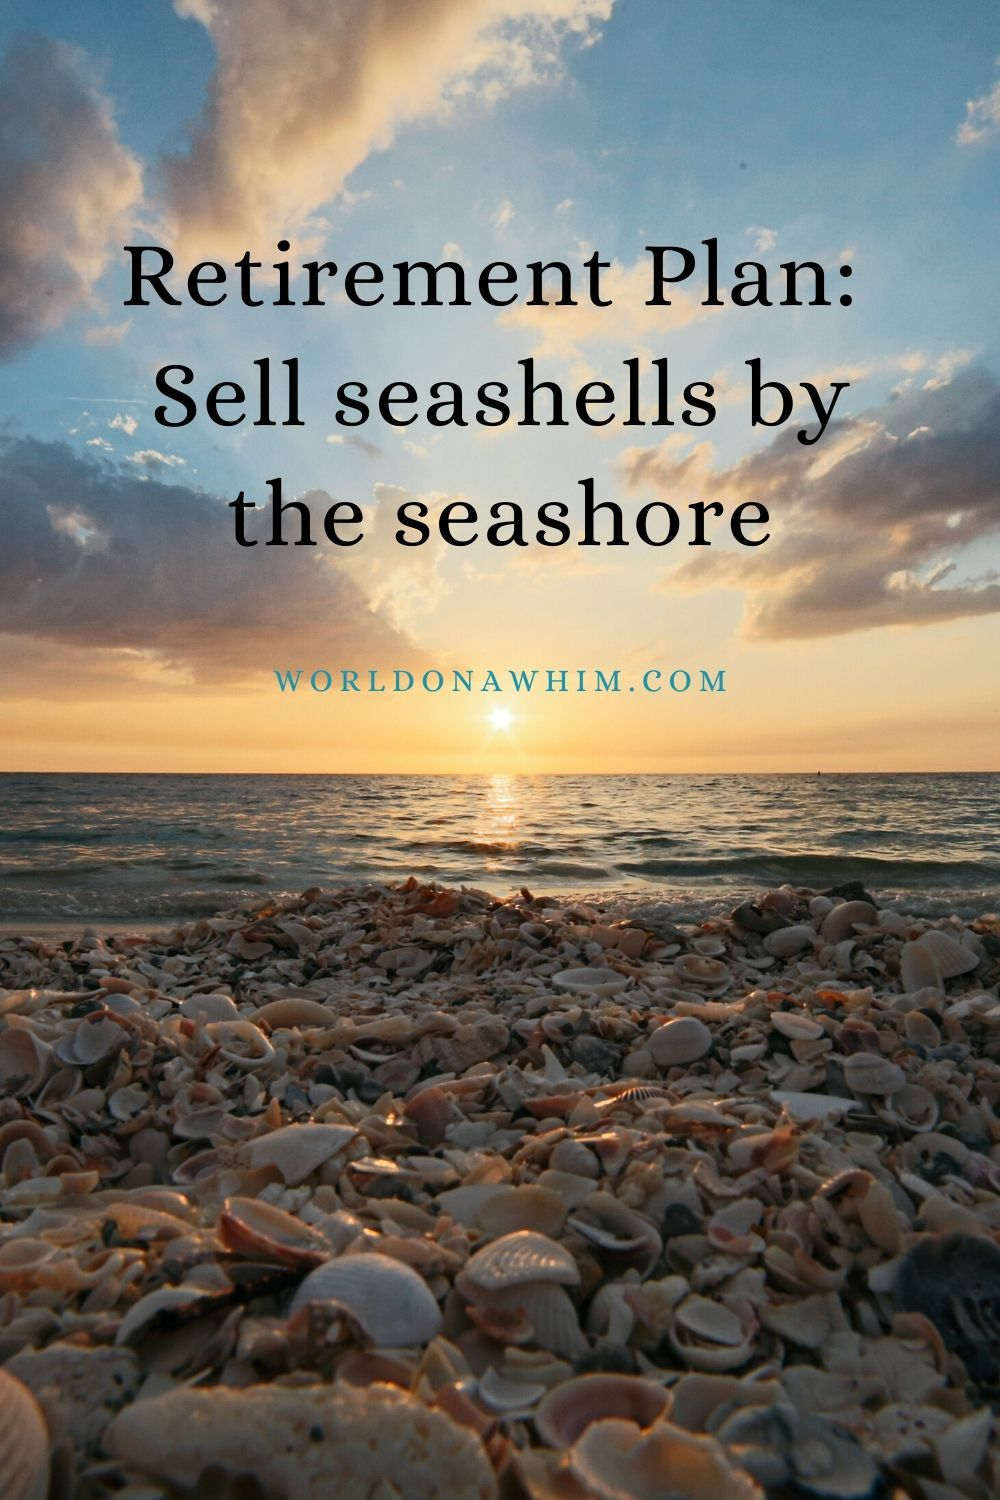 35 Awesome Sea Quotes And Captions You Should Read In 2020 Sea Quotes Seashore Quotes Sea Captions